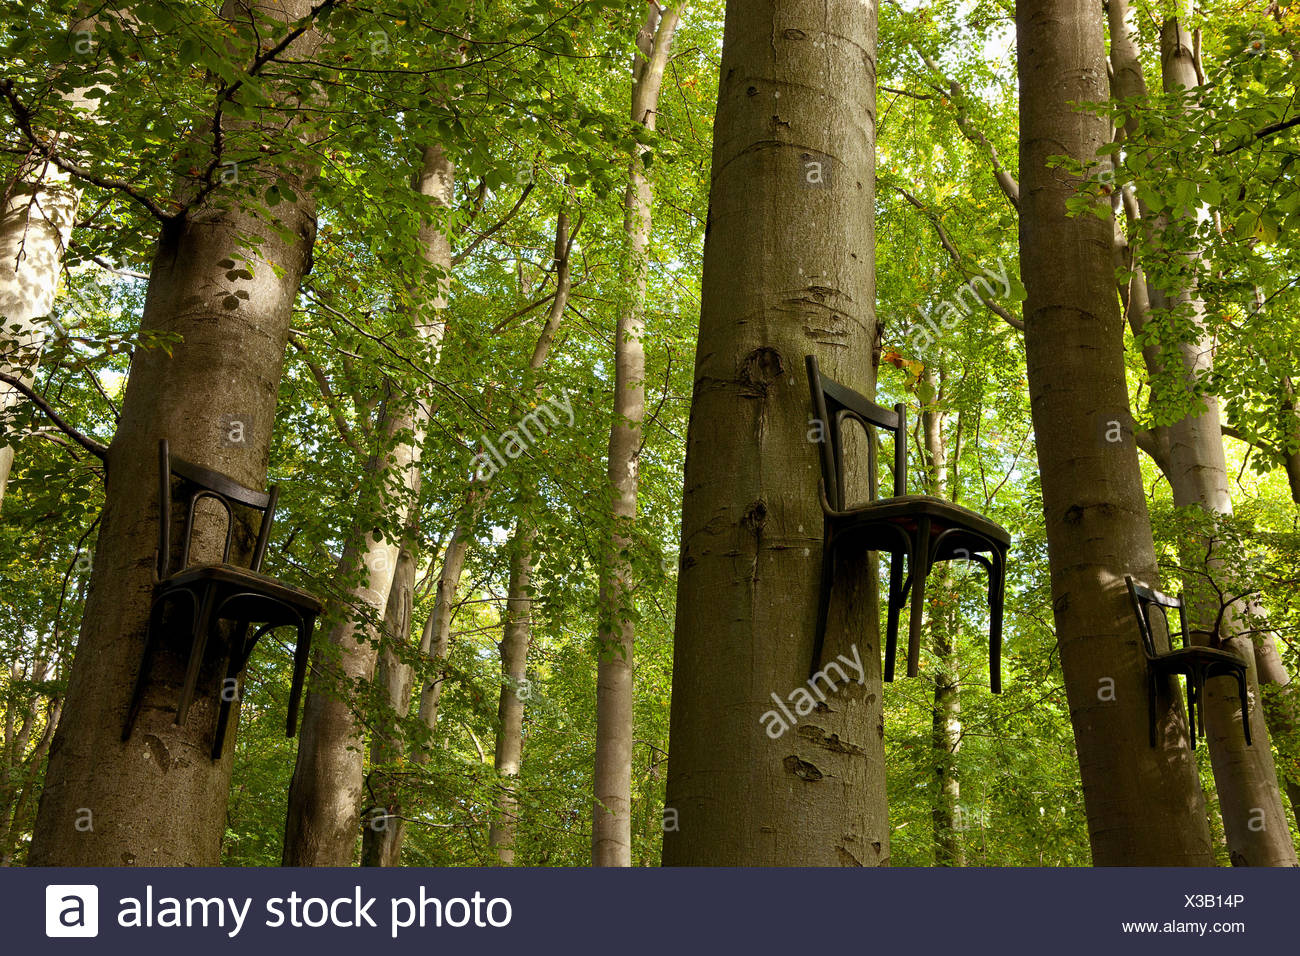 Chairs attached to tree trunks high up in forest - Stock Image